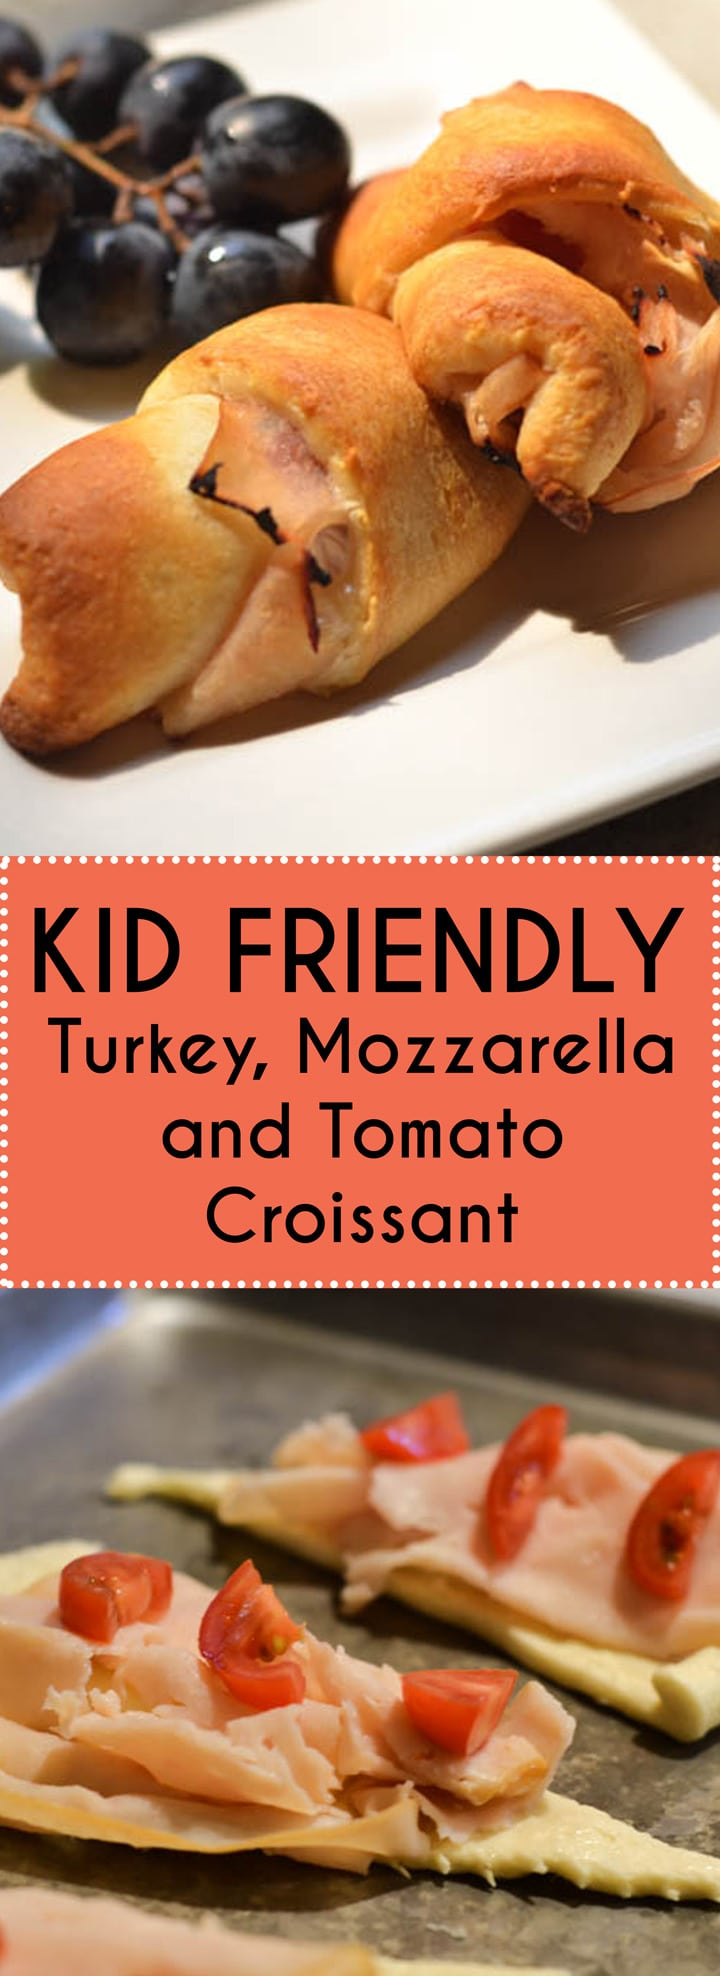 "Kid Friendly Turkey, Mozzarella and Tomato Croissant is a perfect lunch for little hands (toddler lunches). It hides some ""good eats"" for the kids inside so picky eaters enjoy their meal. Easy to make recipe and perfect for back to school."